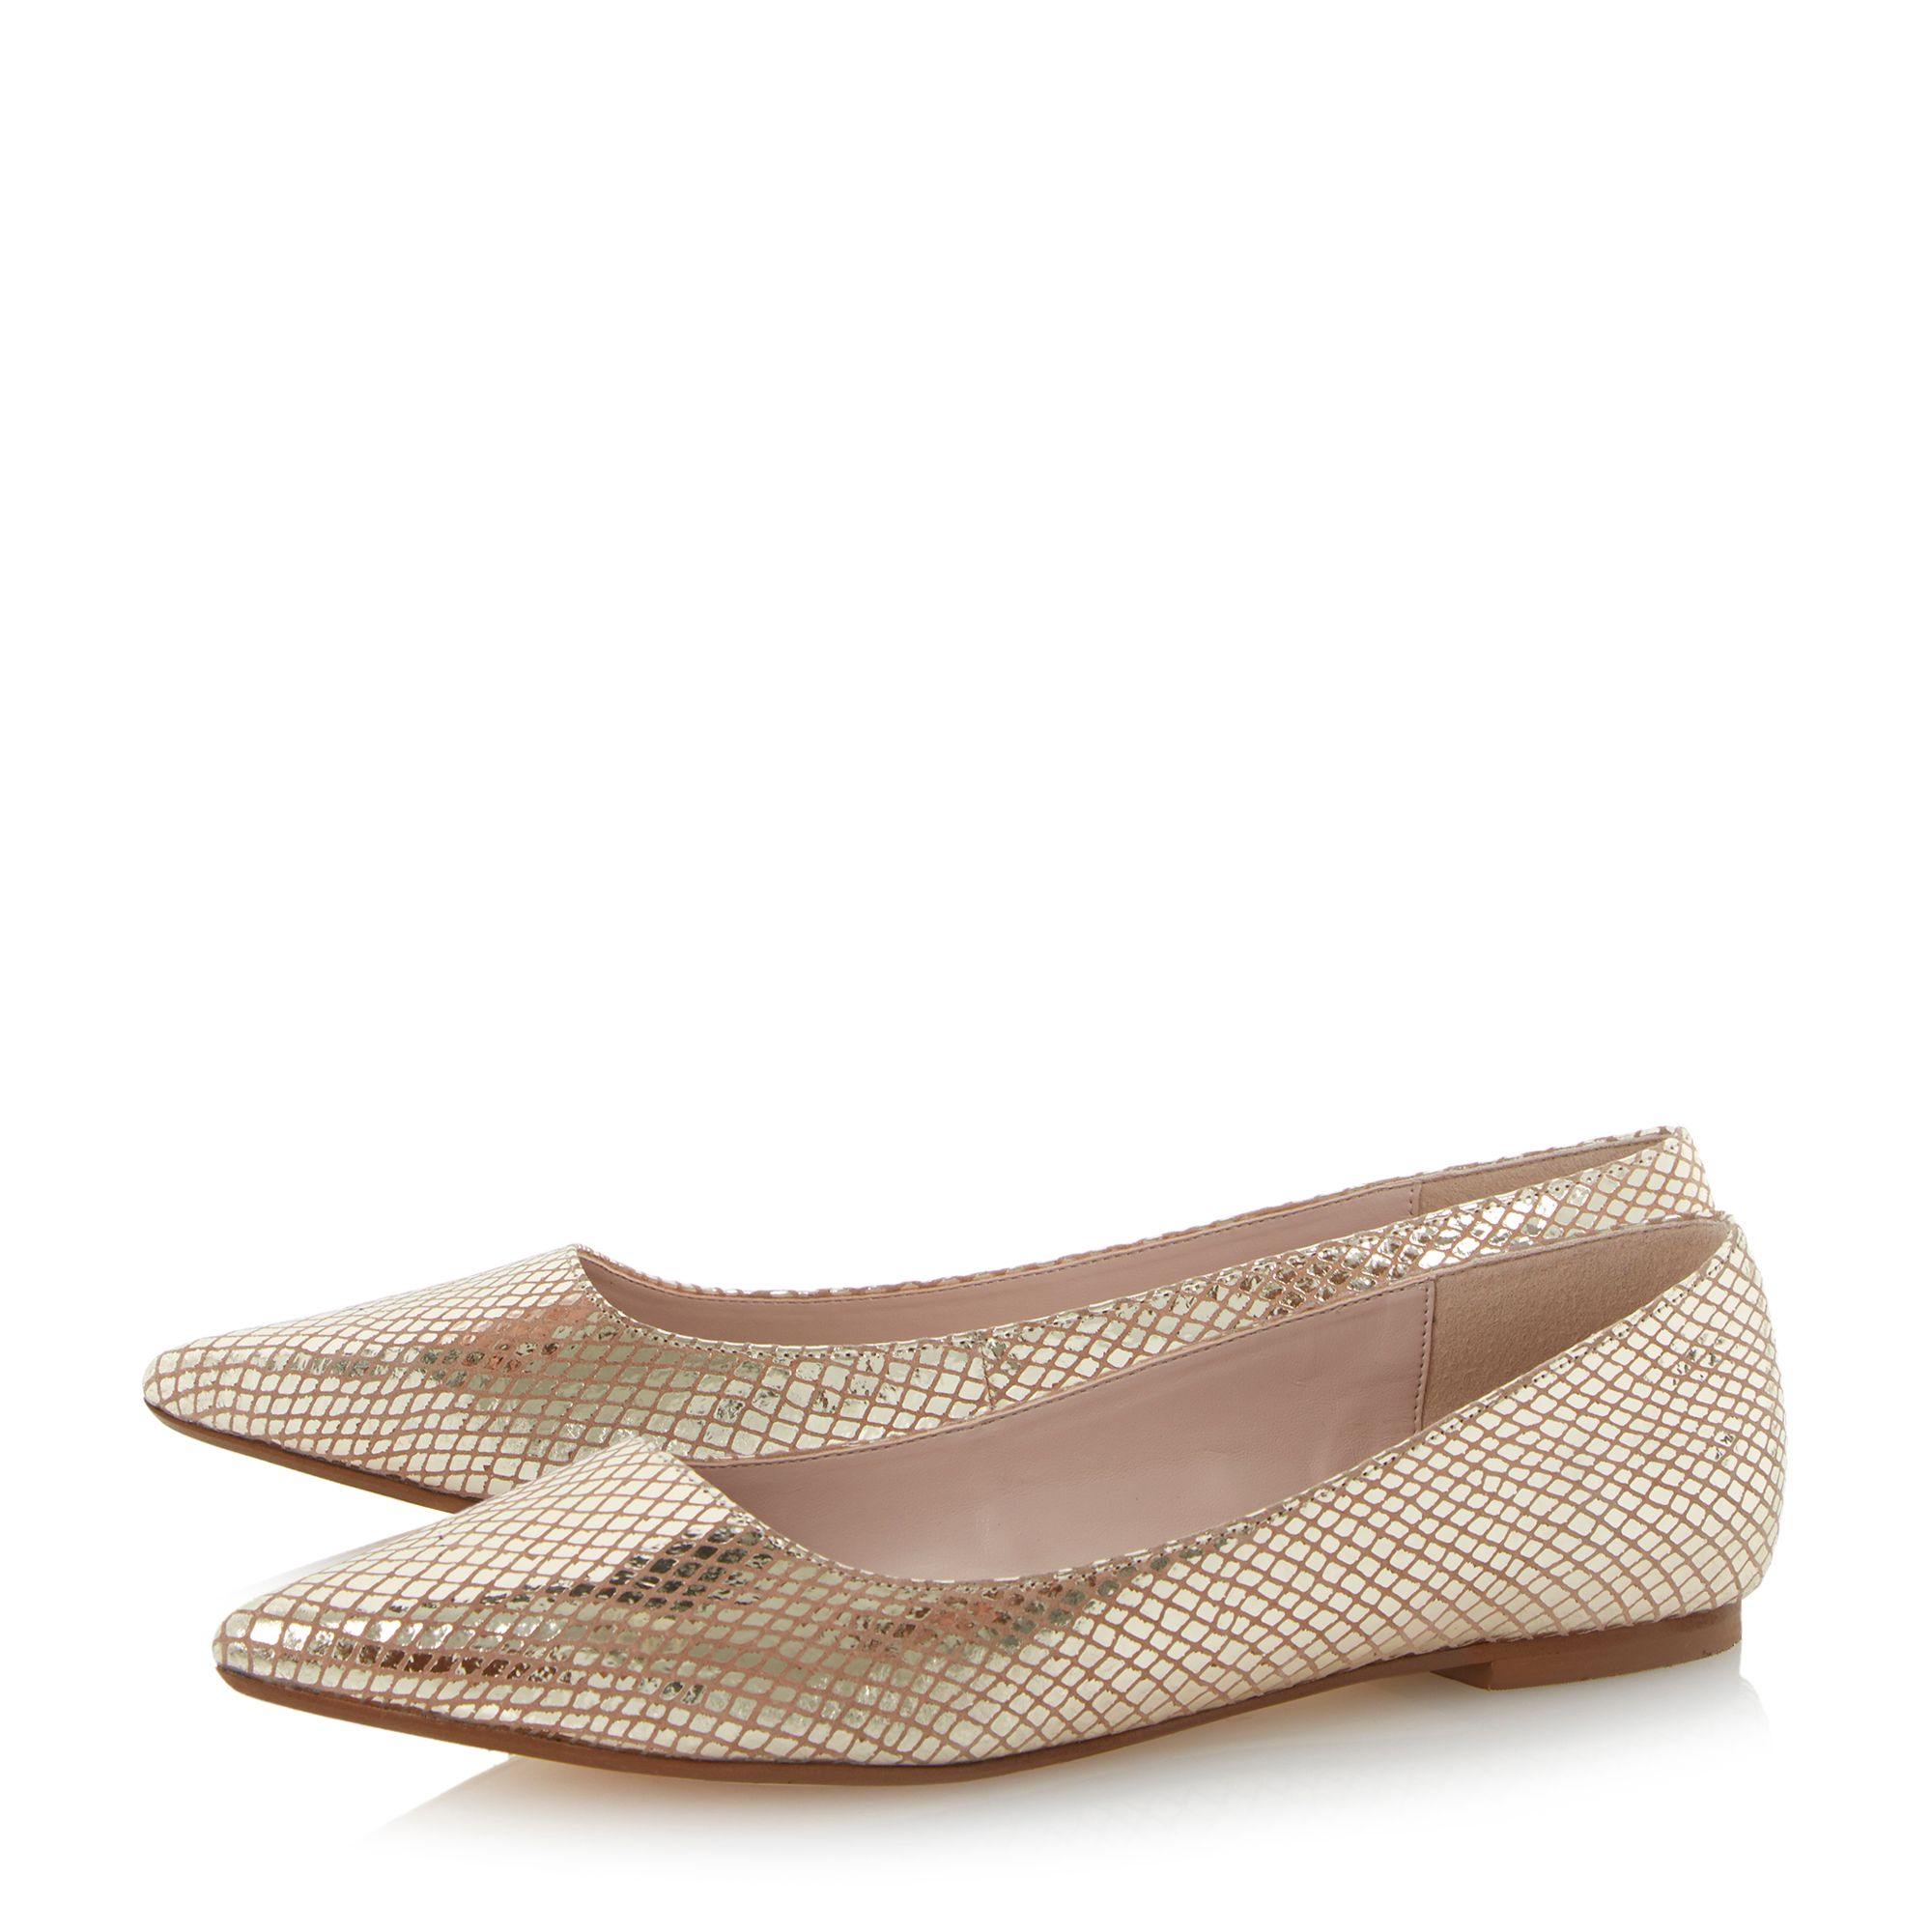 Amarie flat pointed toe court shoes